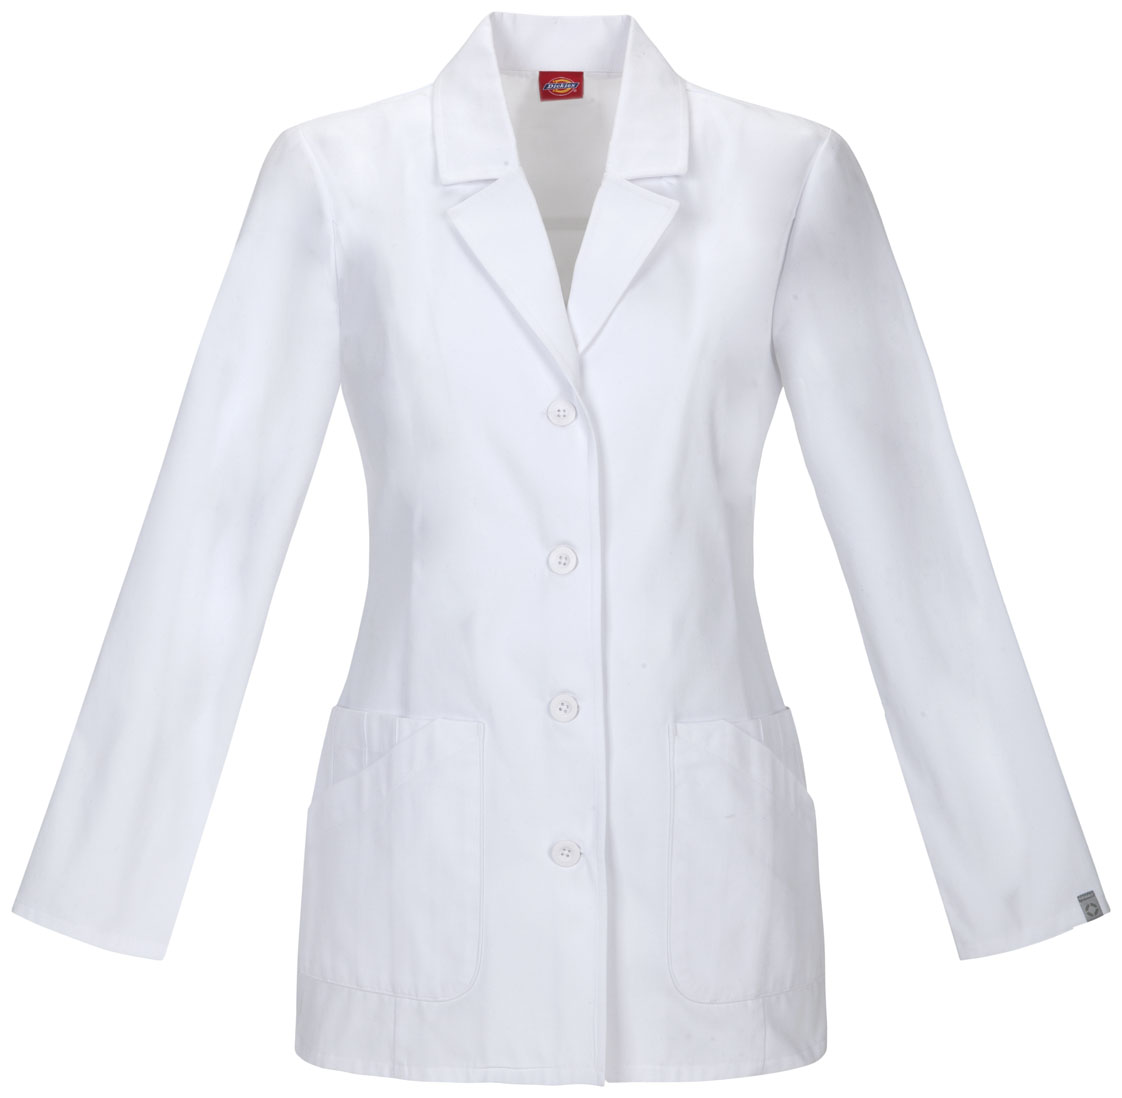 Женский медицинский халат 84405A Dickies EDS Professional Whites with Certainty в интернет-бутике Clinic Style